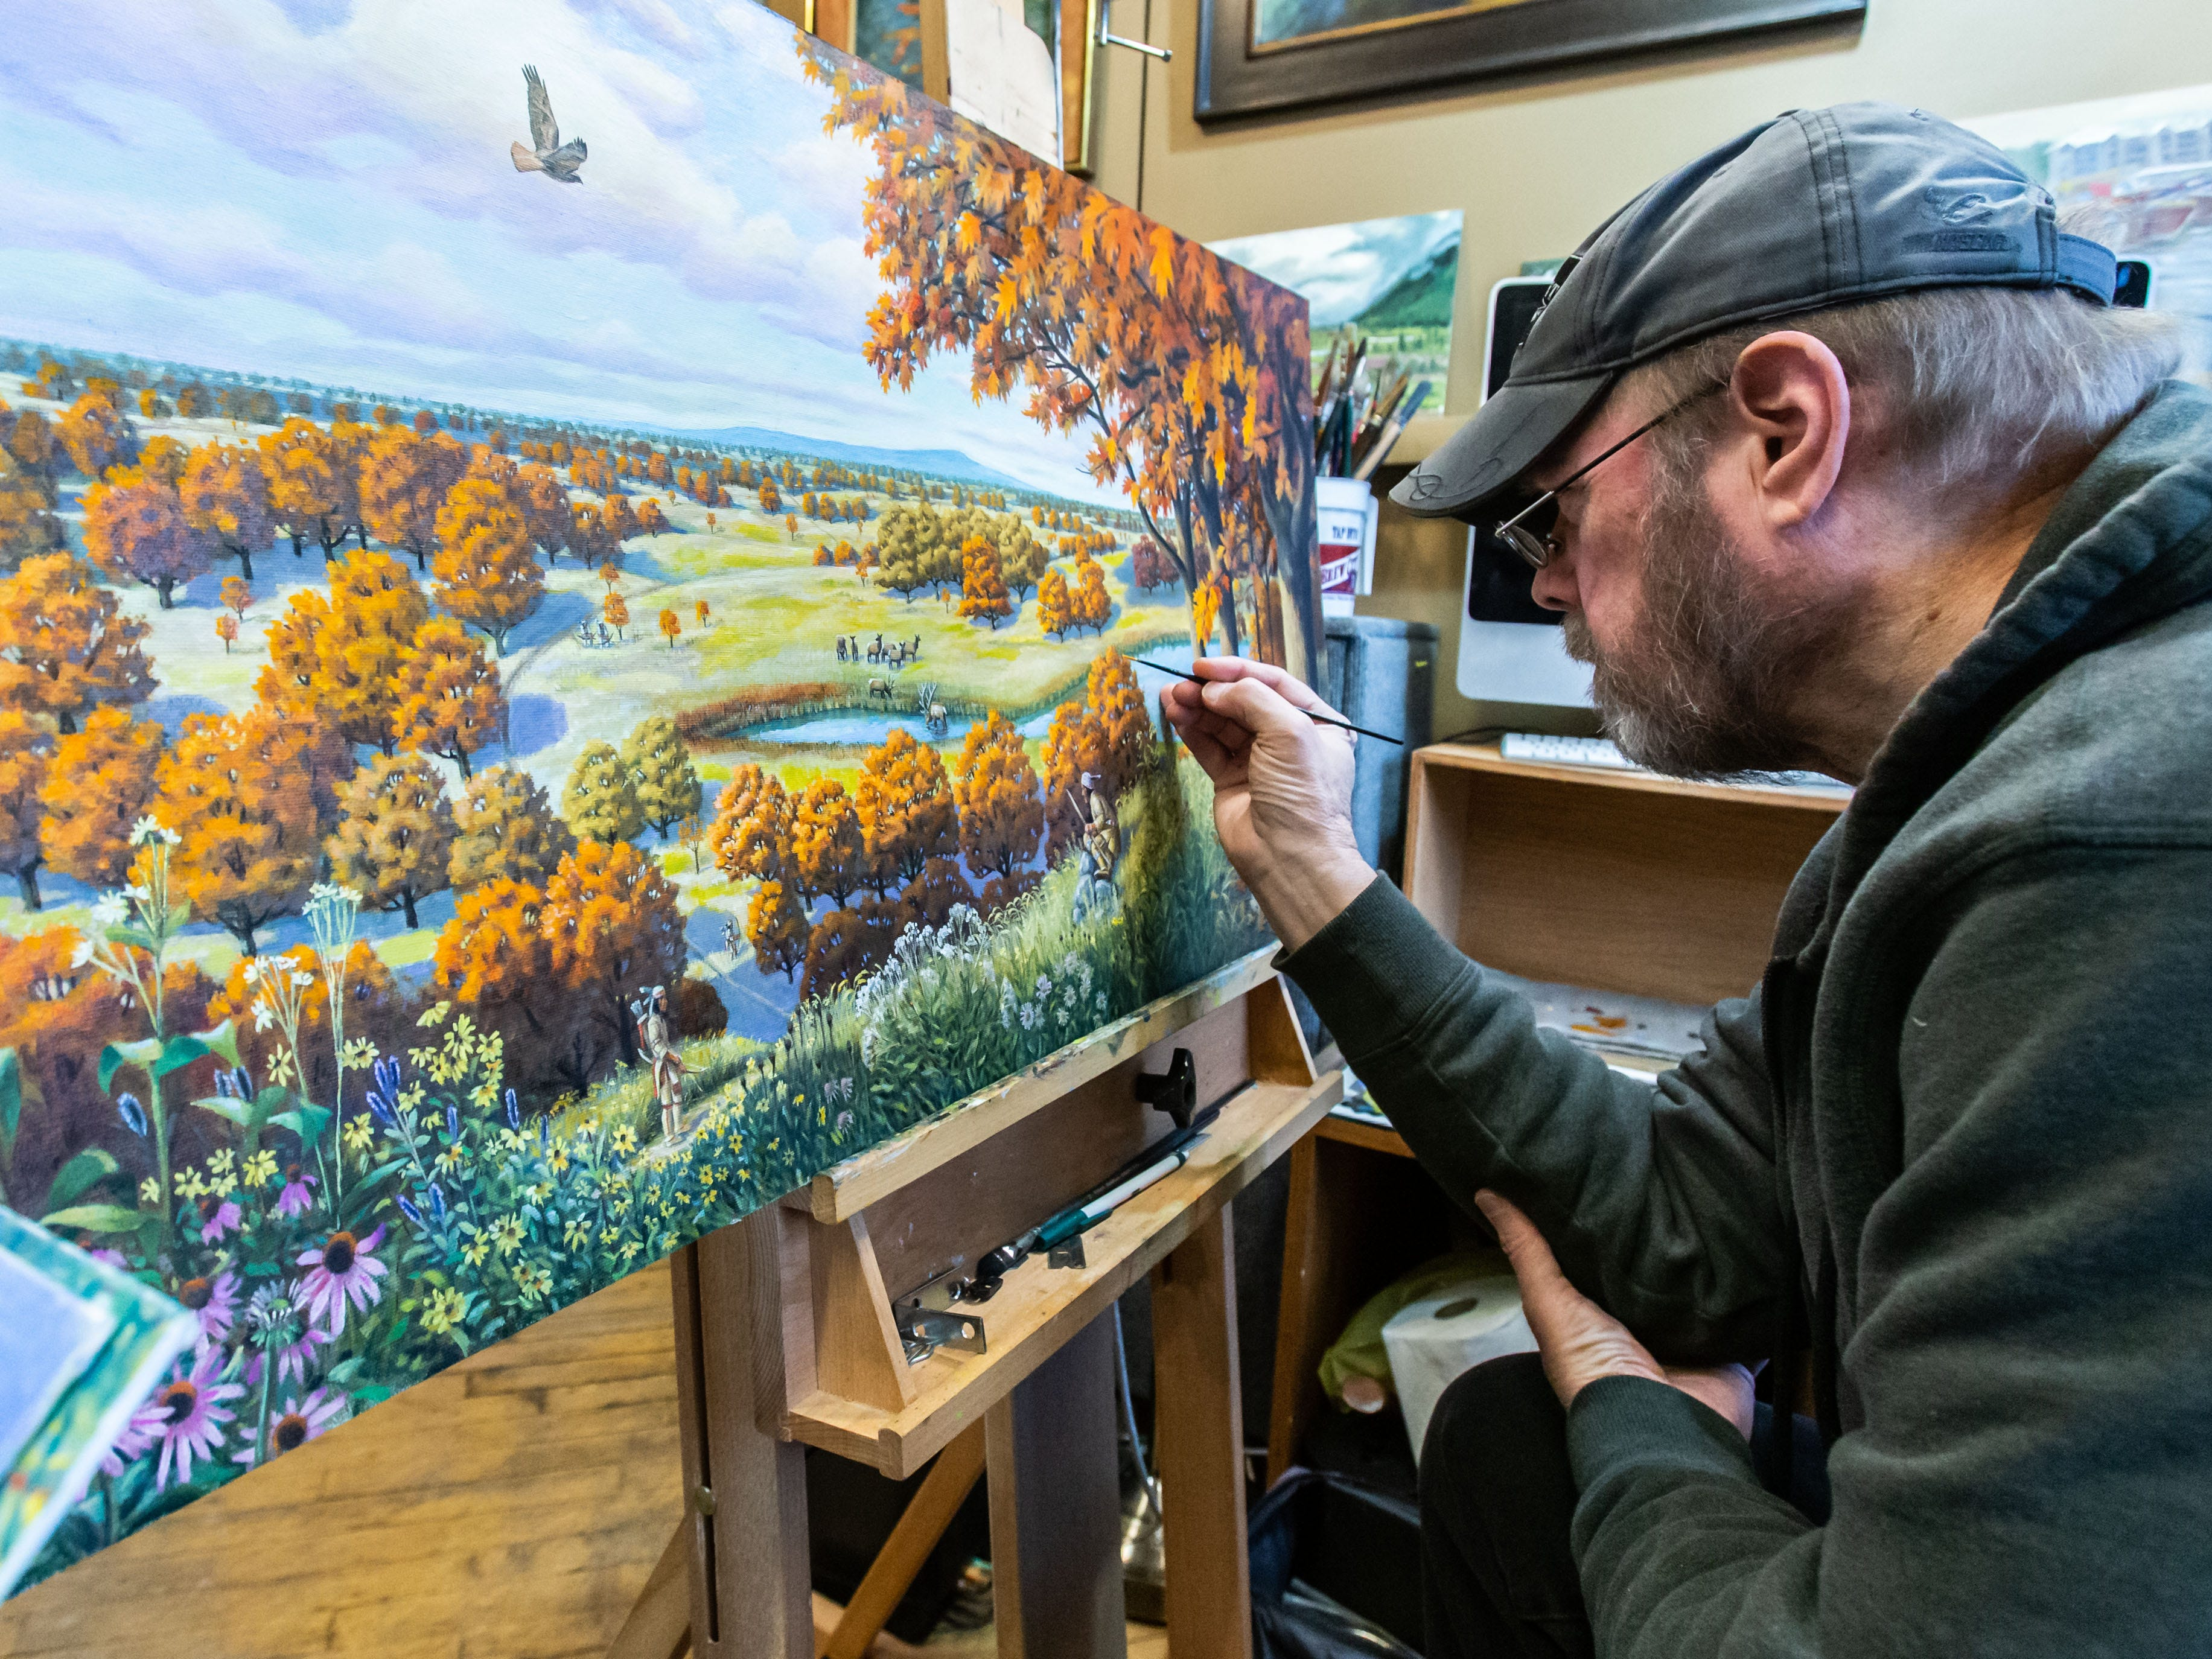 Artist Thomas Buchs works on a painting at The Springs: Gallery/Studios in Waukesha during the Downtown Waukesha Art Crawl on Saturday, March 2, 2019.